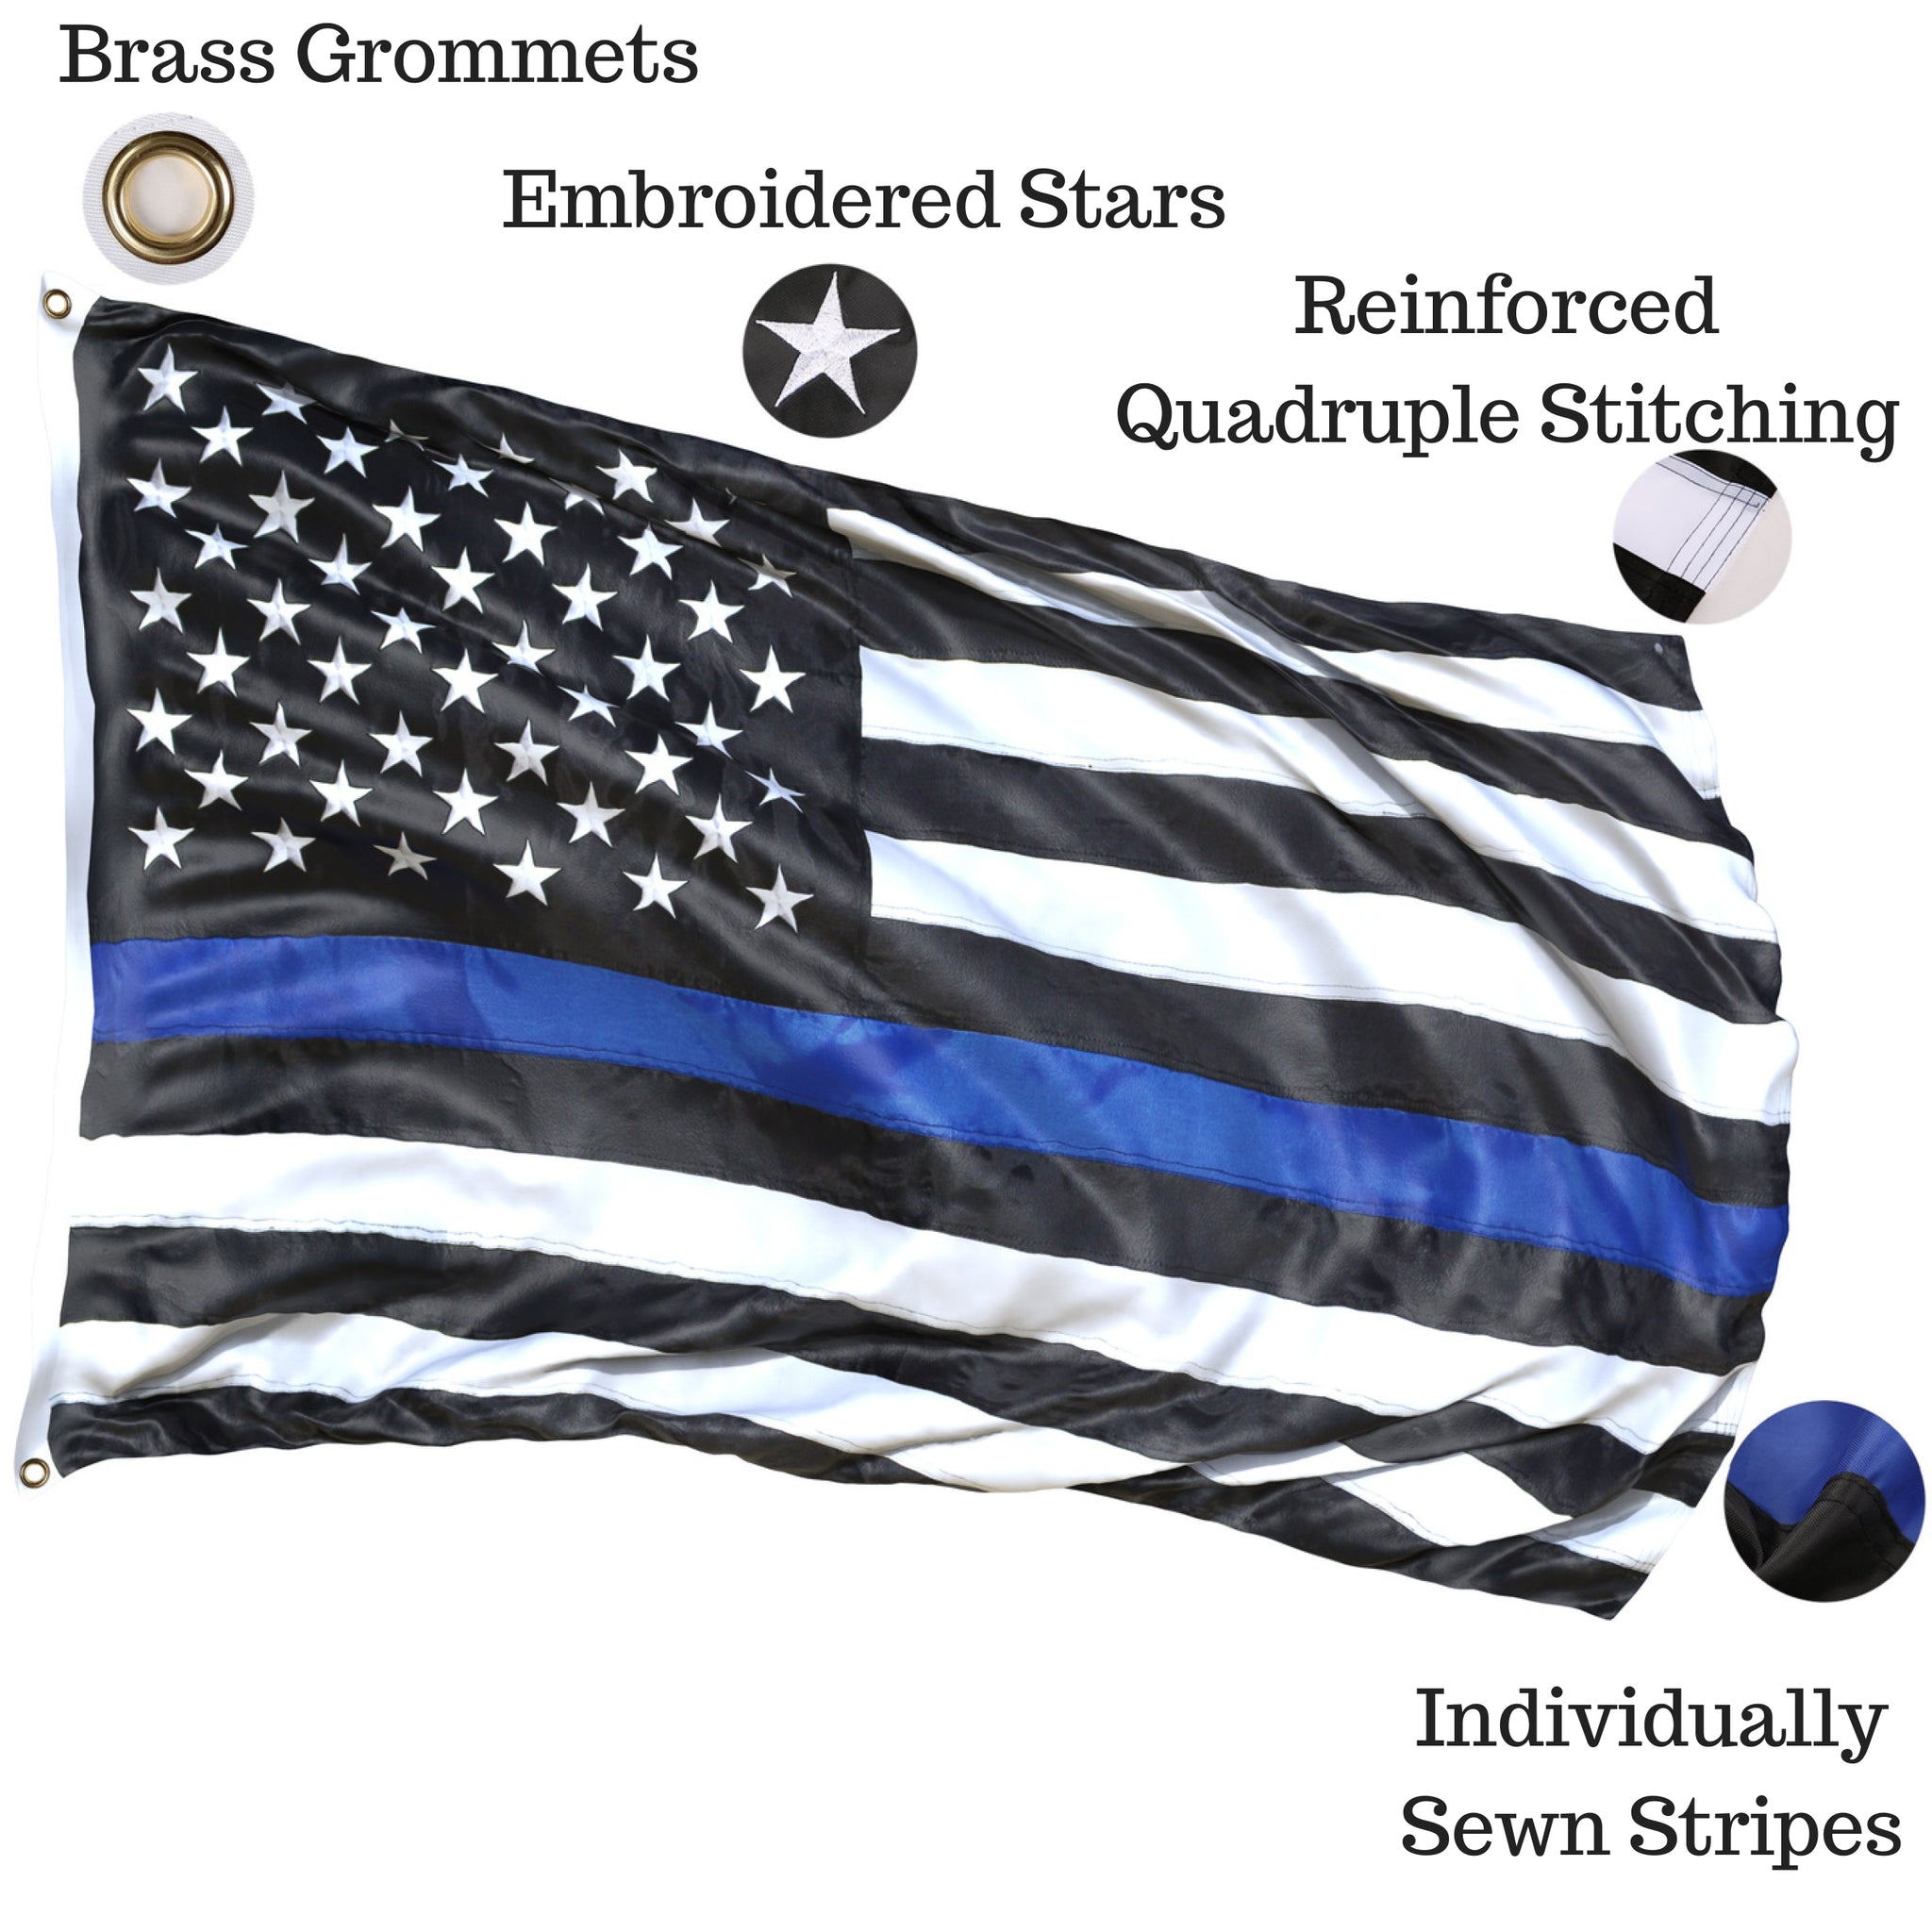 f02f83422a1 Thin Blue Line Flag 3x5 ft with Bonus Car Sticker Made in USA ...